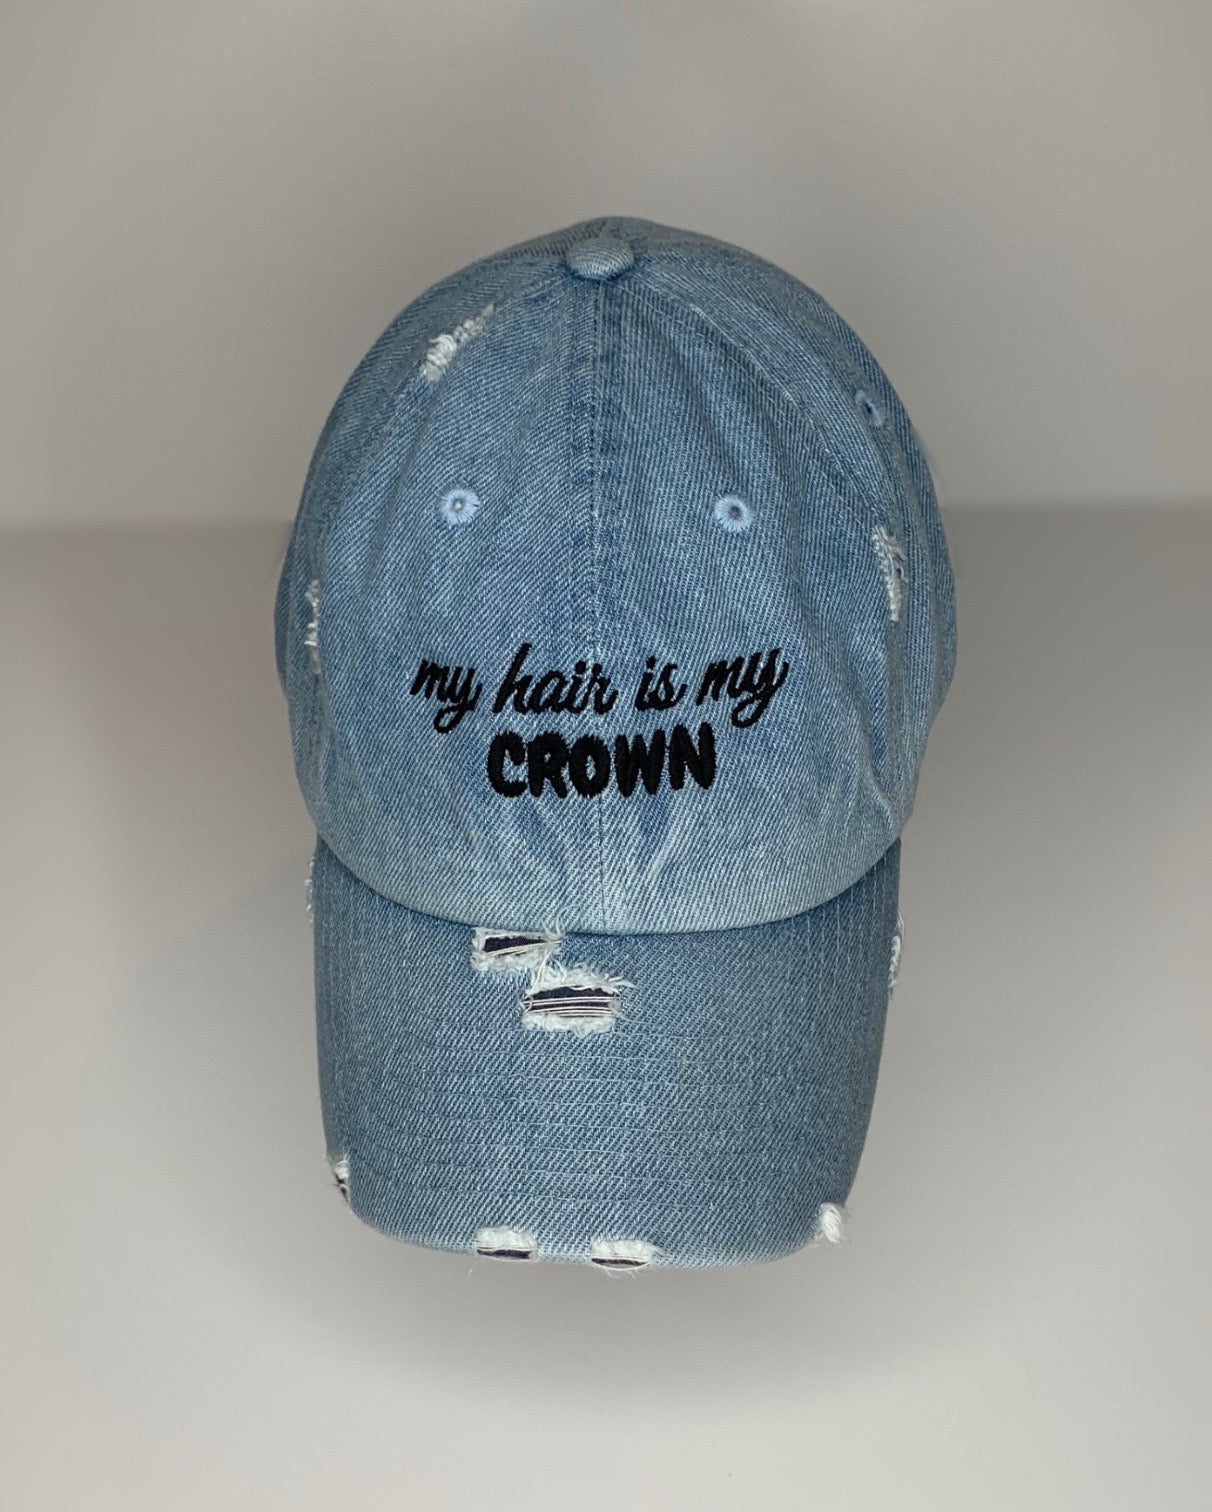 My hair is my crown - light denim